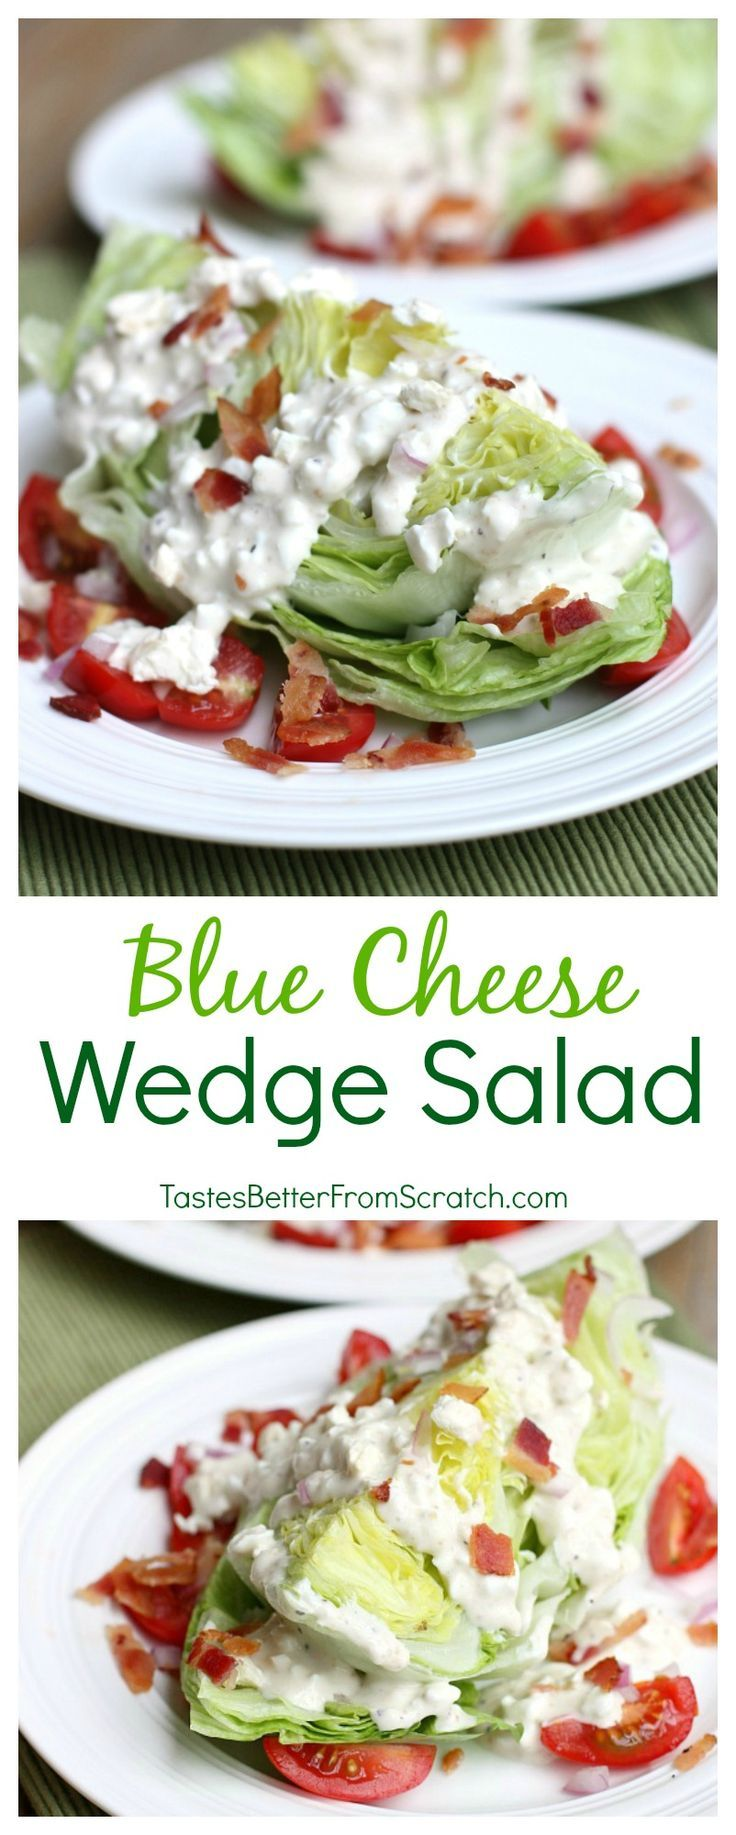 Simple Blue Cheese Wedge Salad recipe from TastesBetterFromScratch.com- My husband's FAVORITE salad!